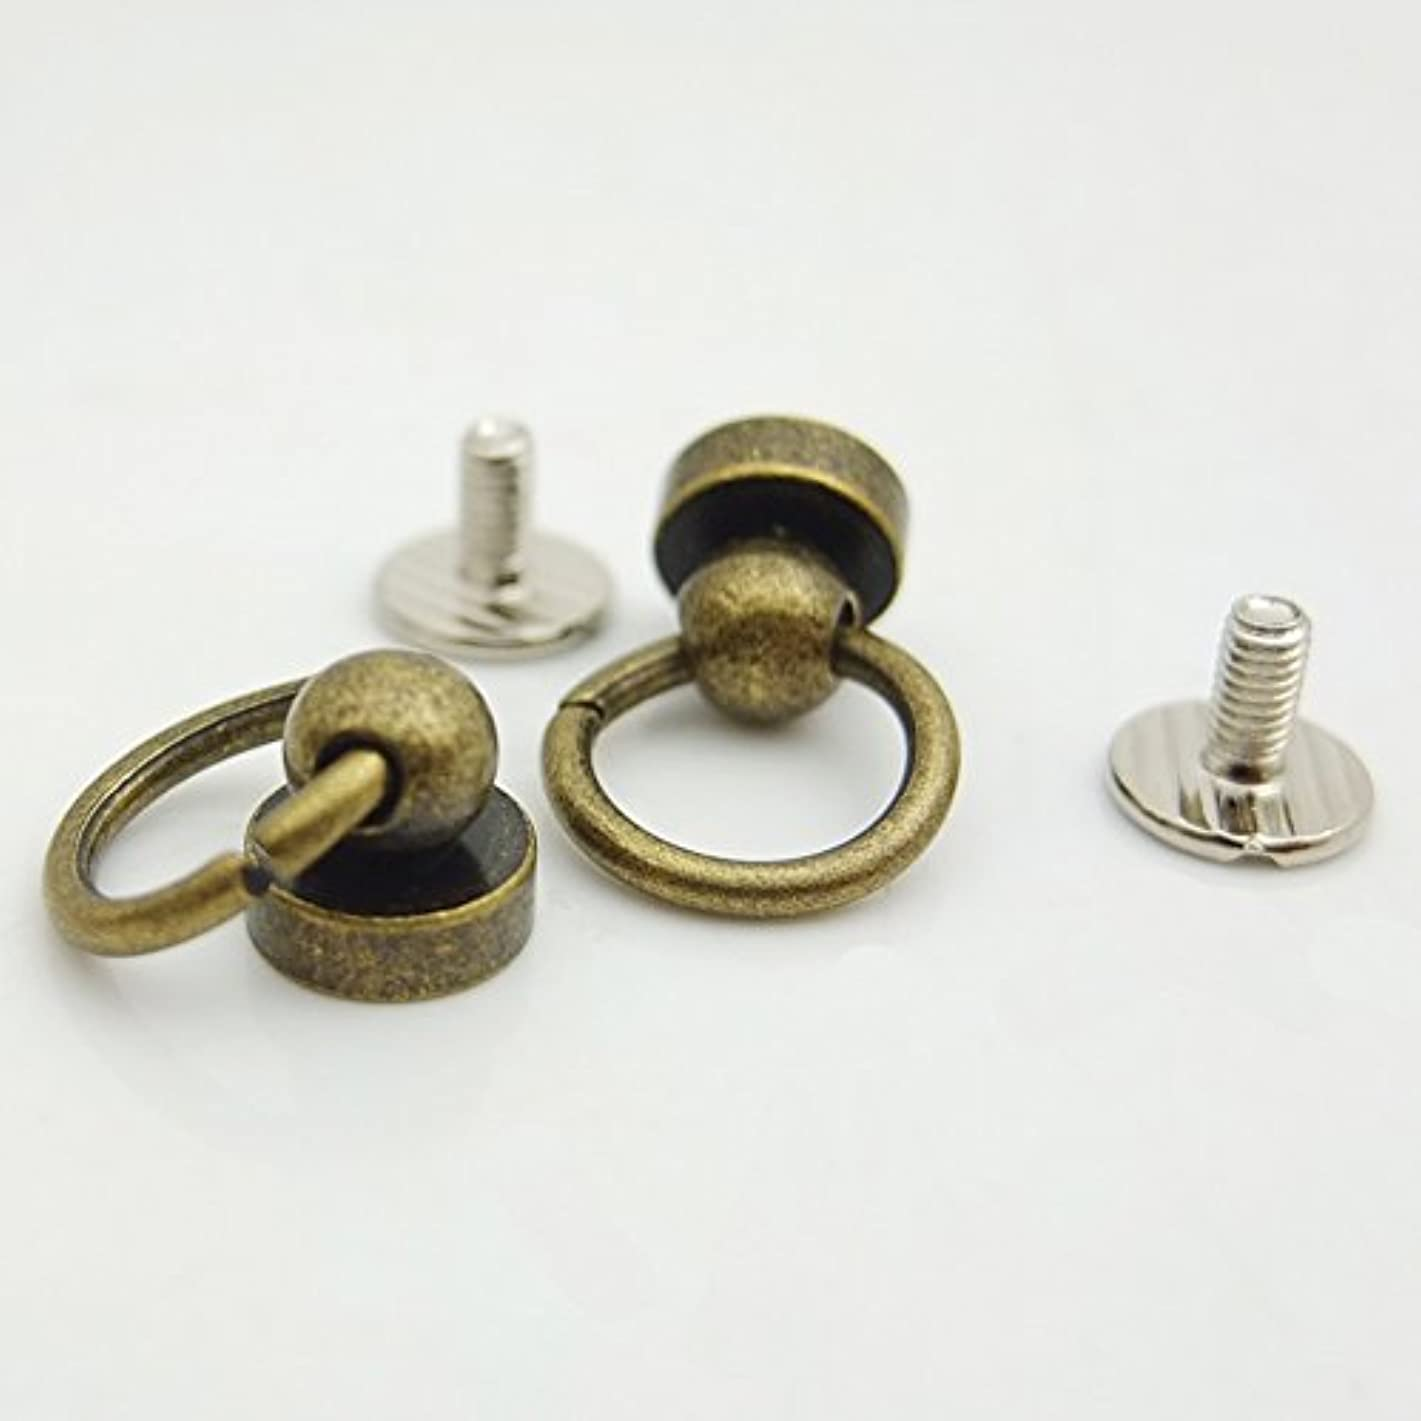 Bluemoona 50 Sets - Plated Brass Head Button O-ring 3/8